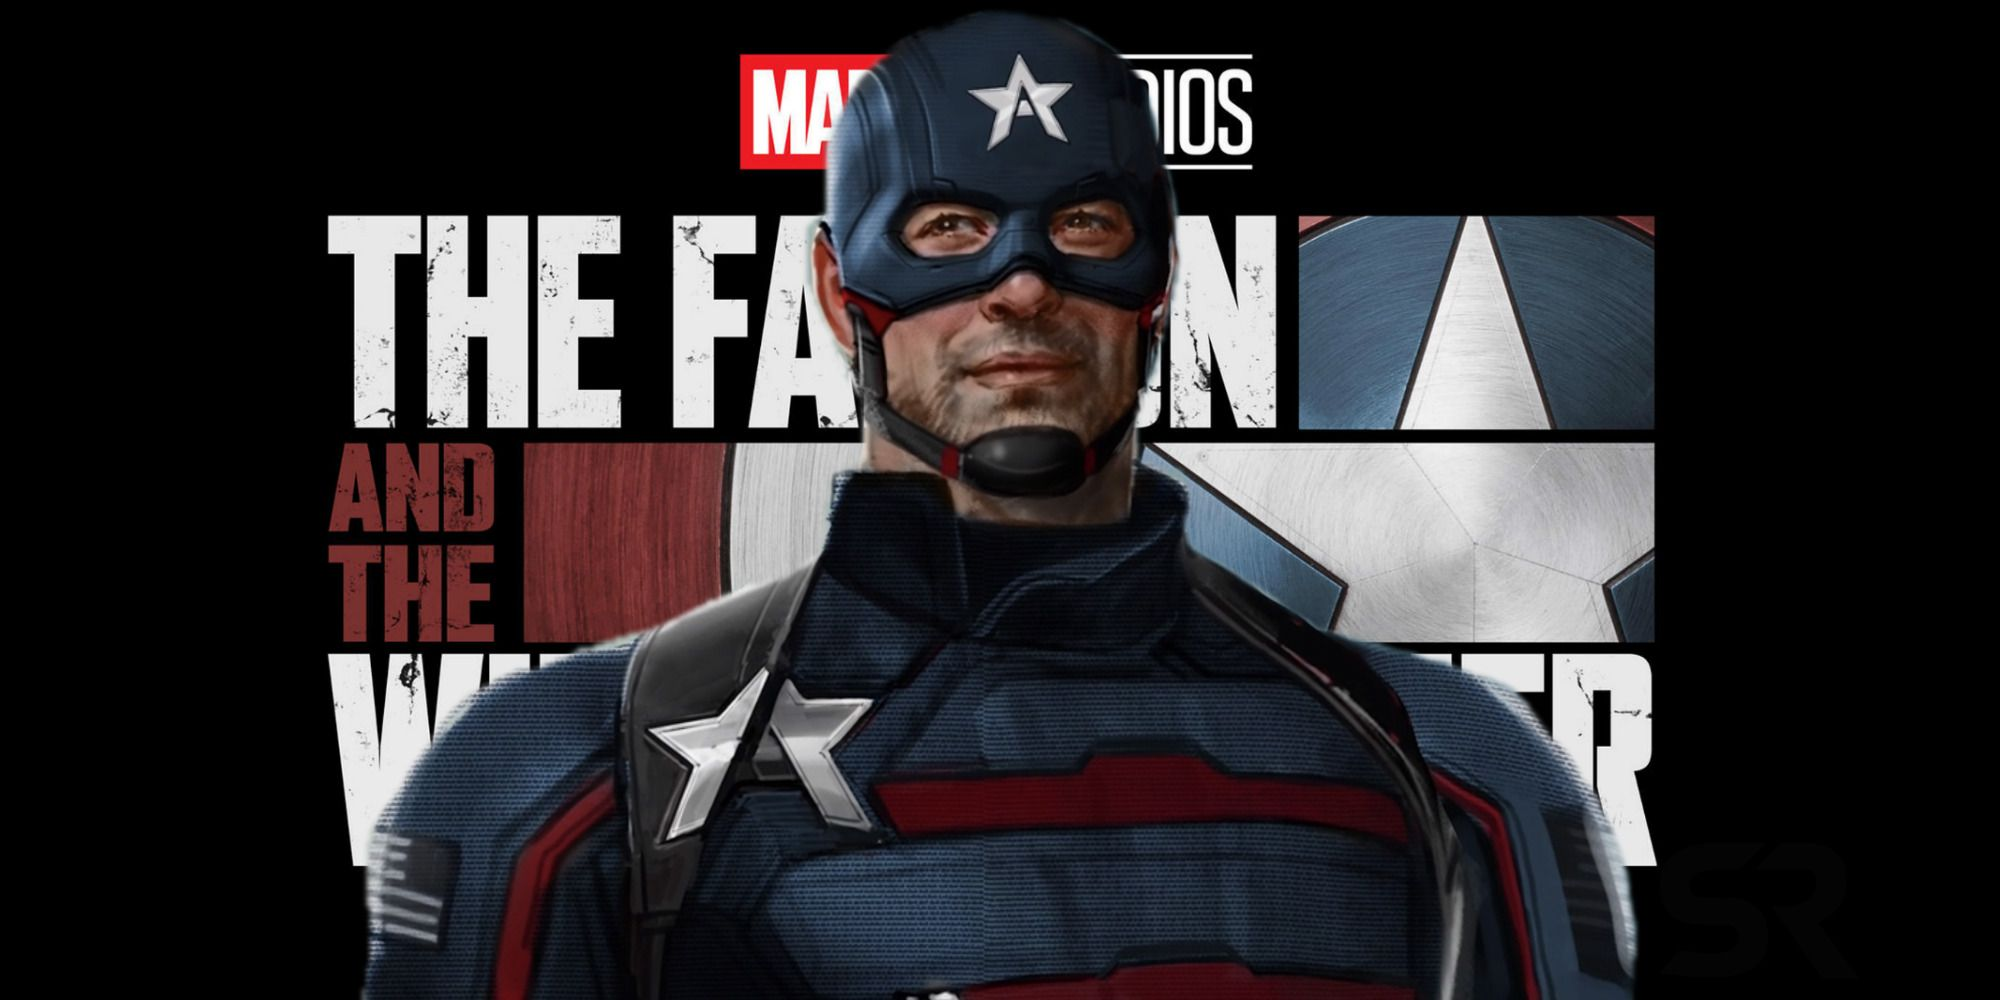 Meet the MCU's new Captain America